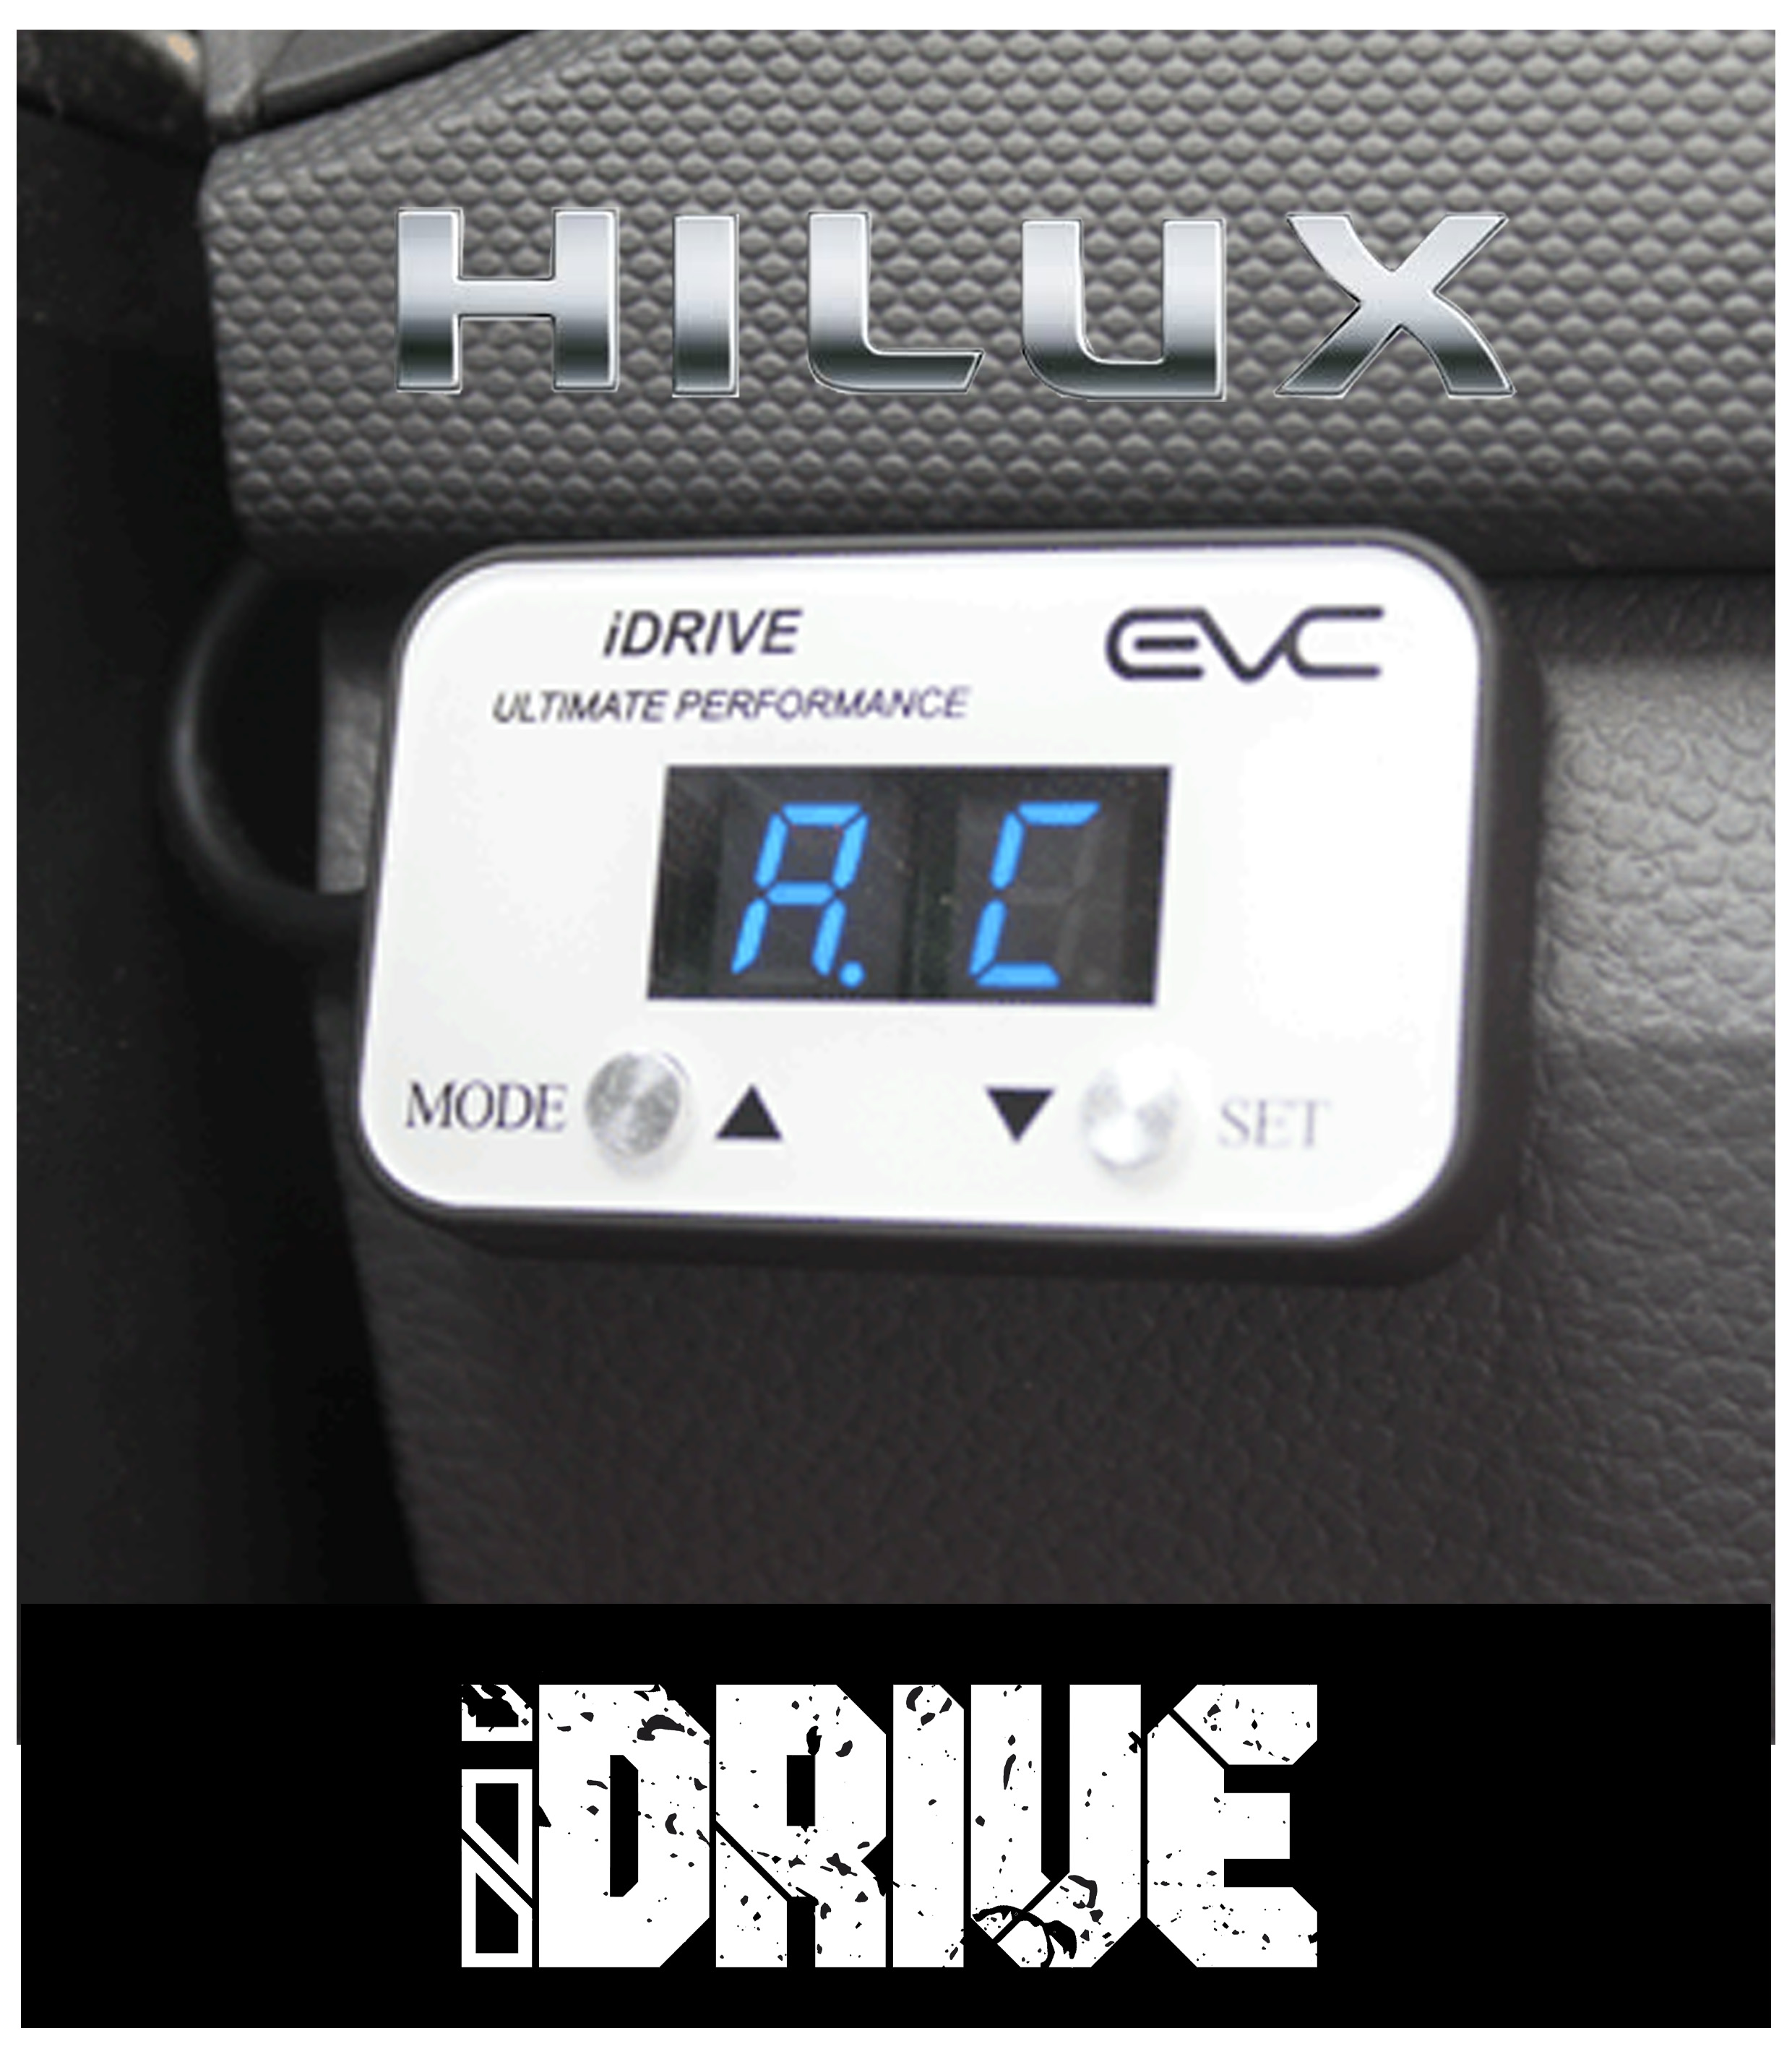 WEbsite_Hilux_iDRIVE_Thumbnail_edited-fsa.jpg